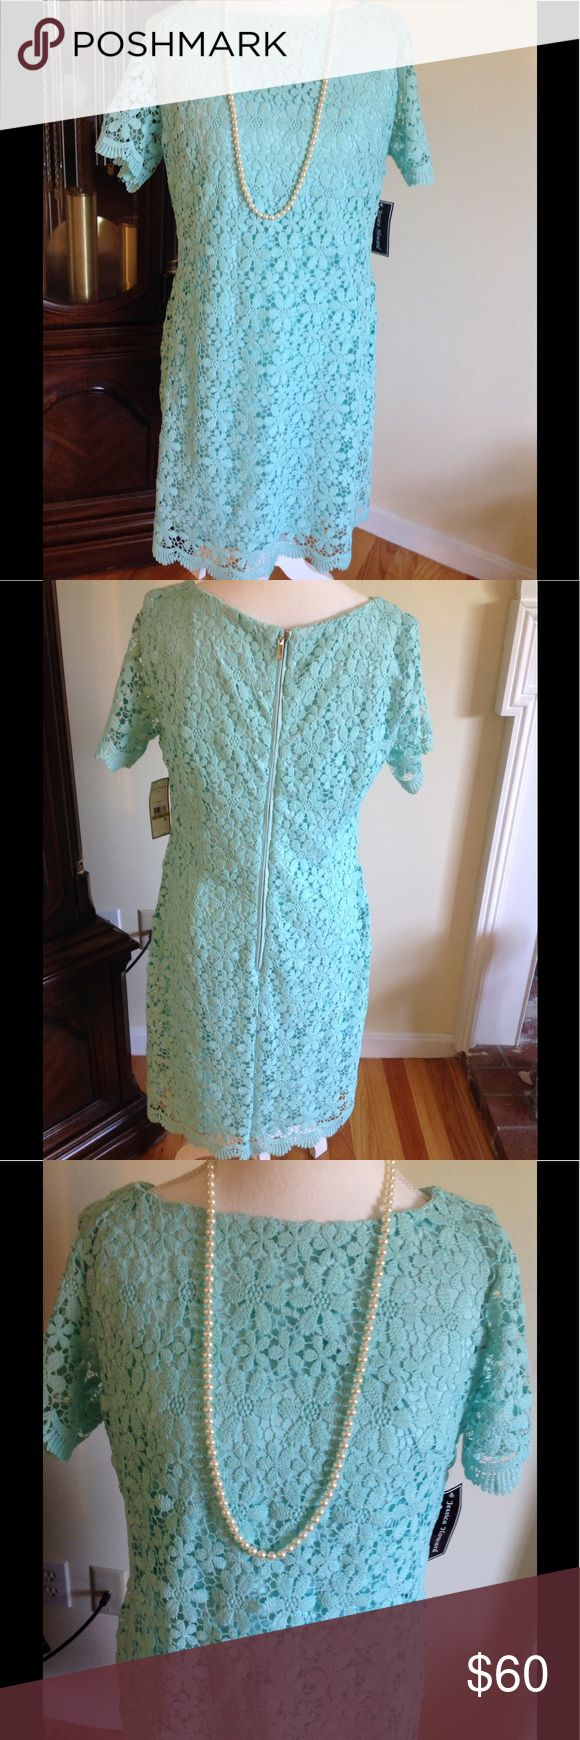 NWT Jessica Howard Mint Green Lace Dress Sz 14 New Beautiful short sleeve sheath dress with all over floral Lace w/ scalloped hem & sleeves. Nice quality. I am 5'1 falls longer on me than model picture. Jessica Howard Dresses